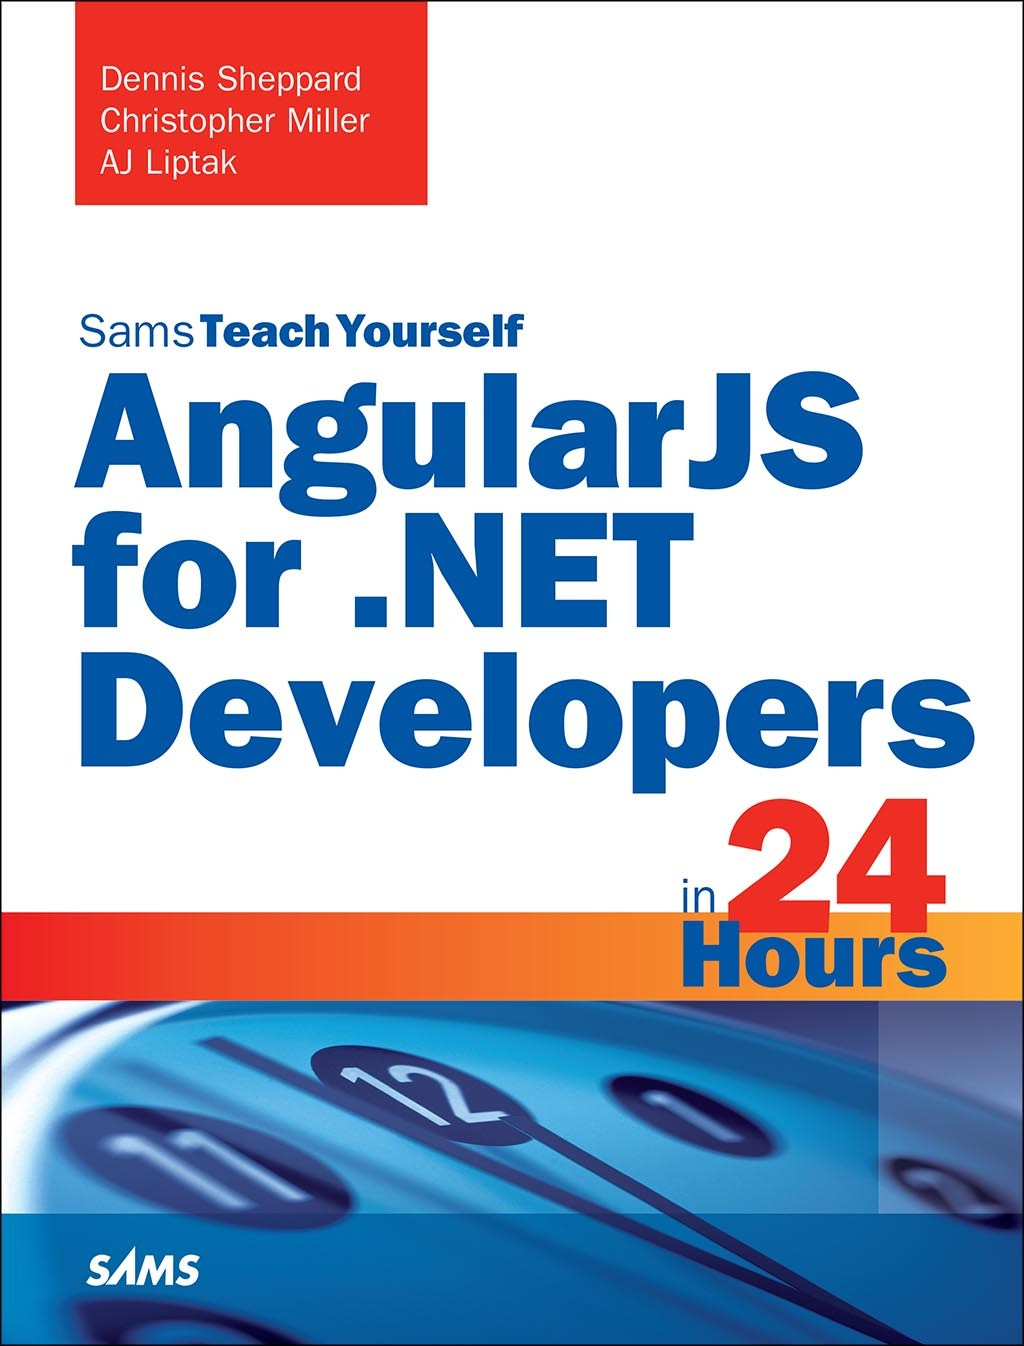 AngularJS for .NET Developers in 24 Hours, Sams Teach Yourself